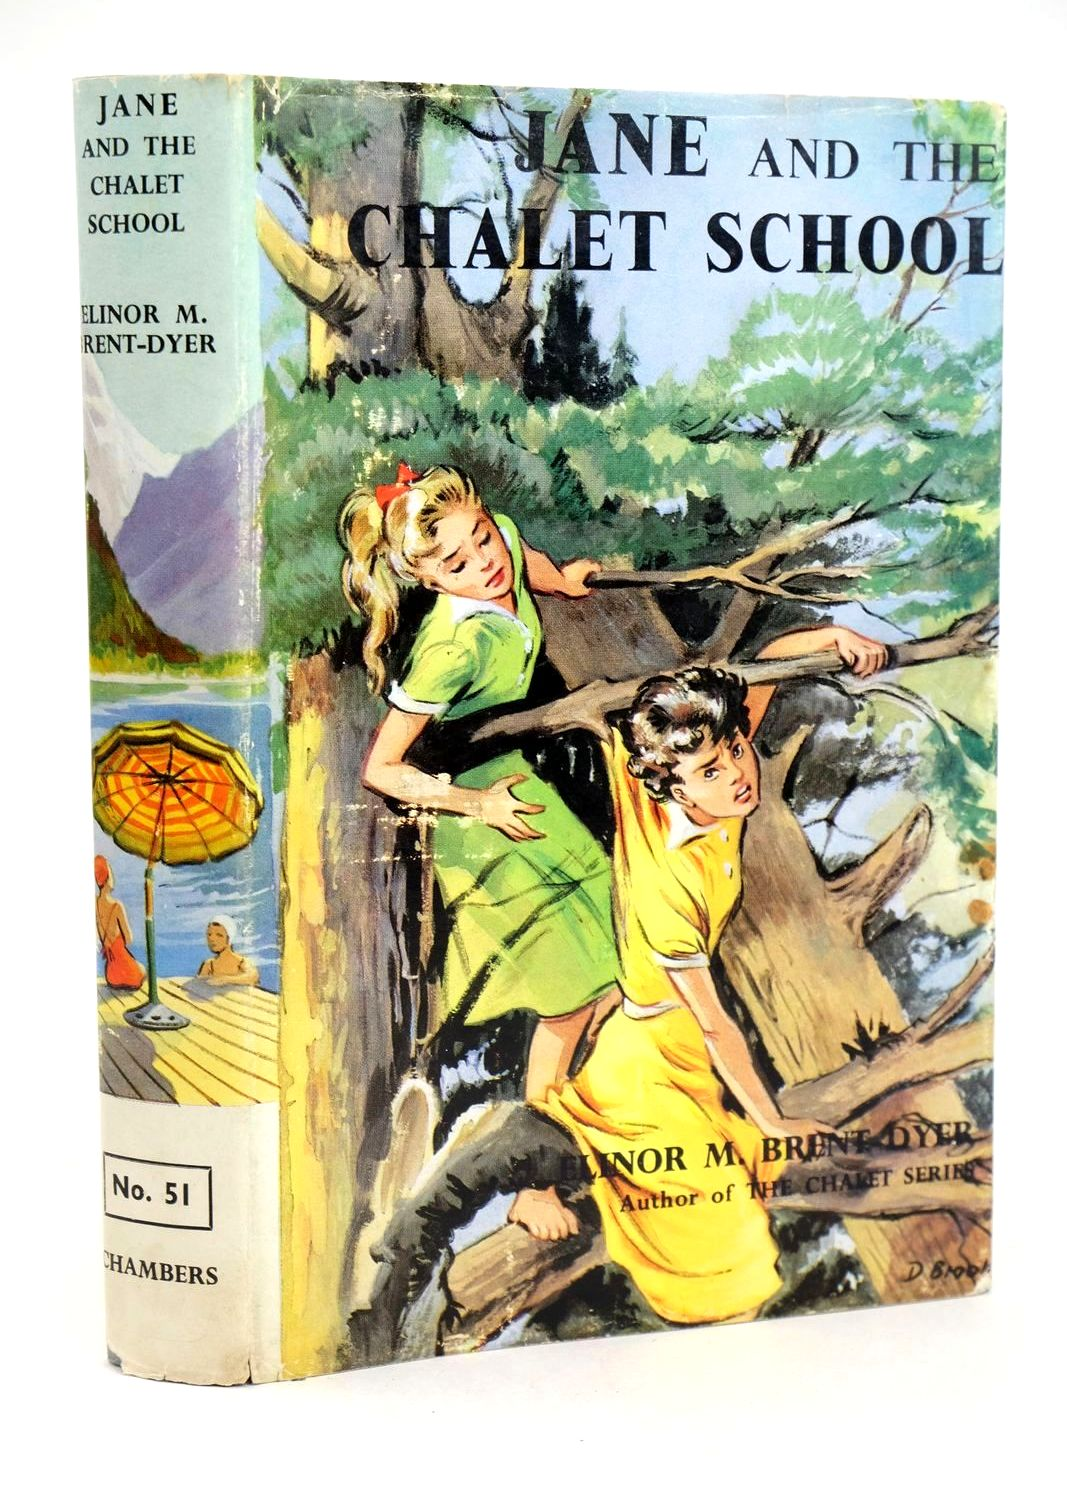 Photo of JANE AND THE CHALET SCHOOL written by Brent-Dyer, Elinor M. published by W. & R. Chambers Limited (STOCK CODE: 1318980)  for sale by Stella & Rose's Books